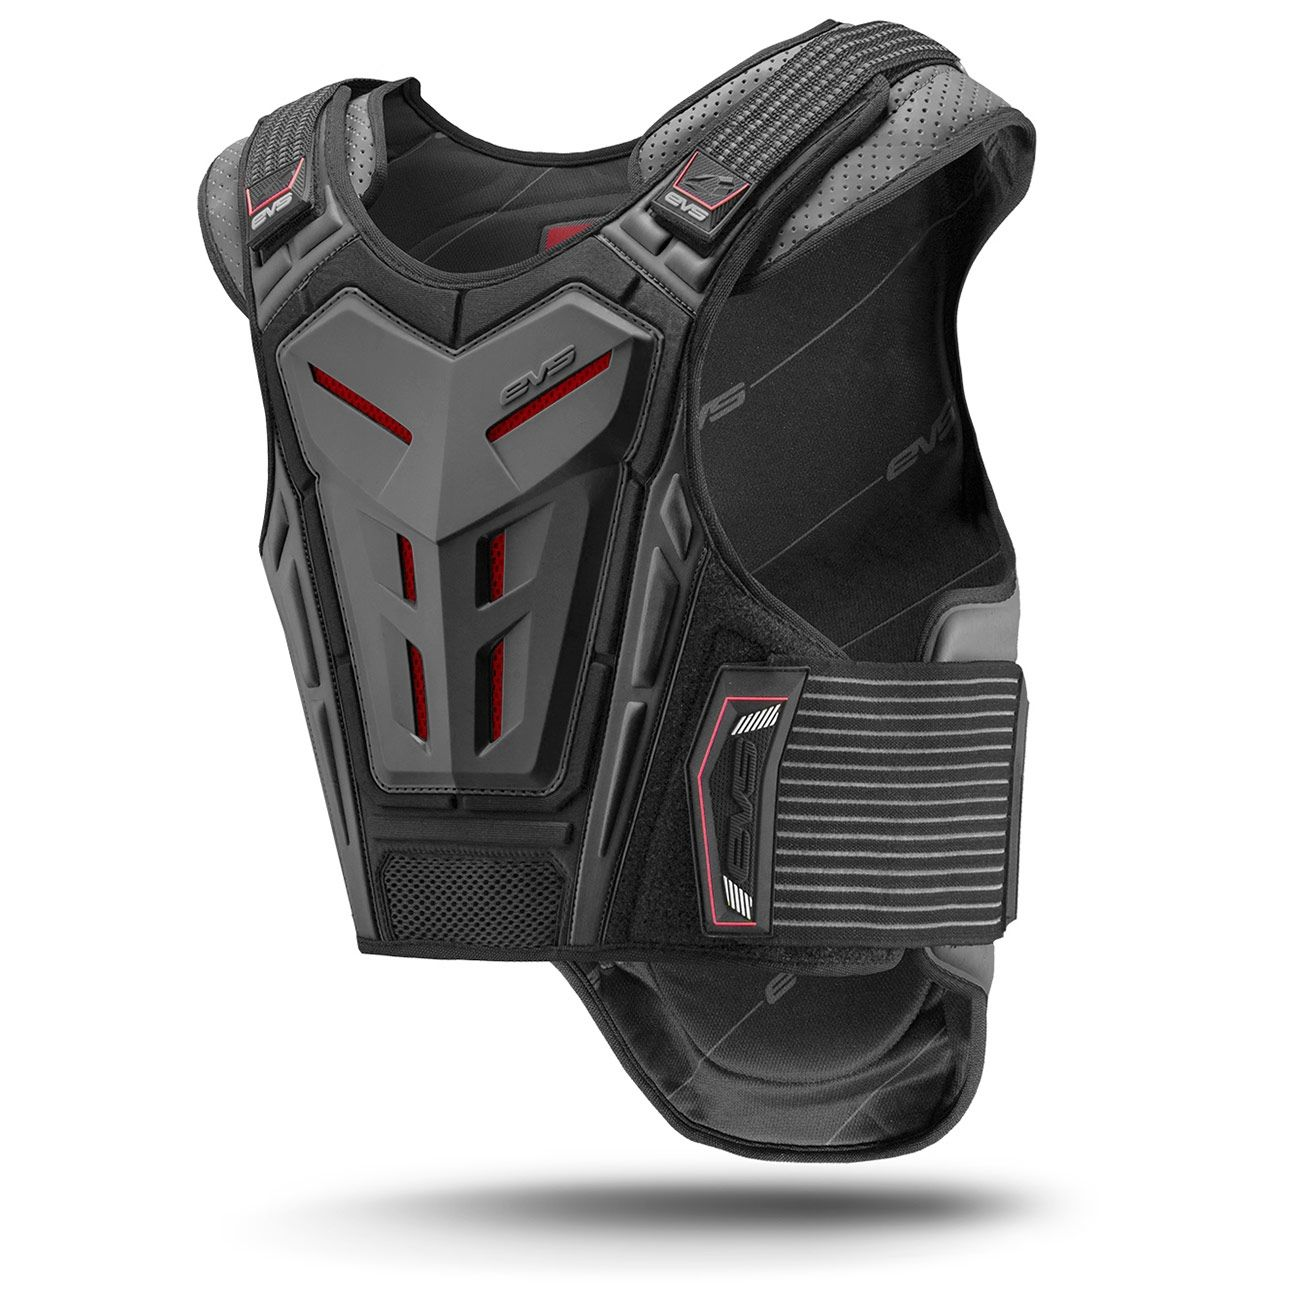 Street Vest Chest / Back Protection BODY ARMOR